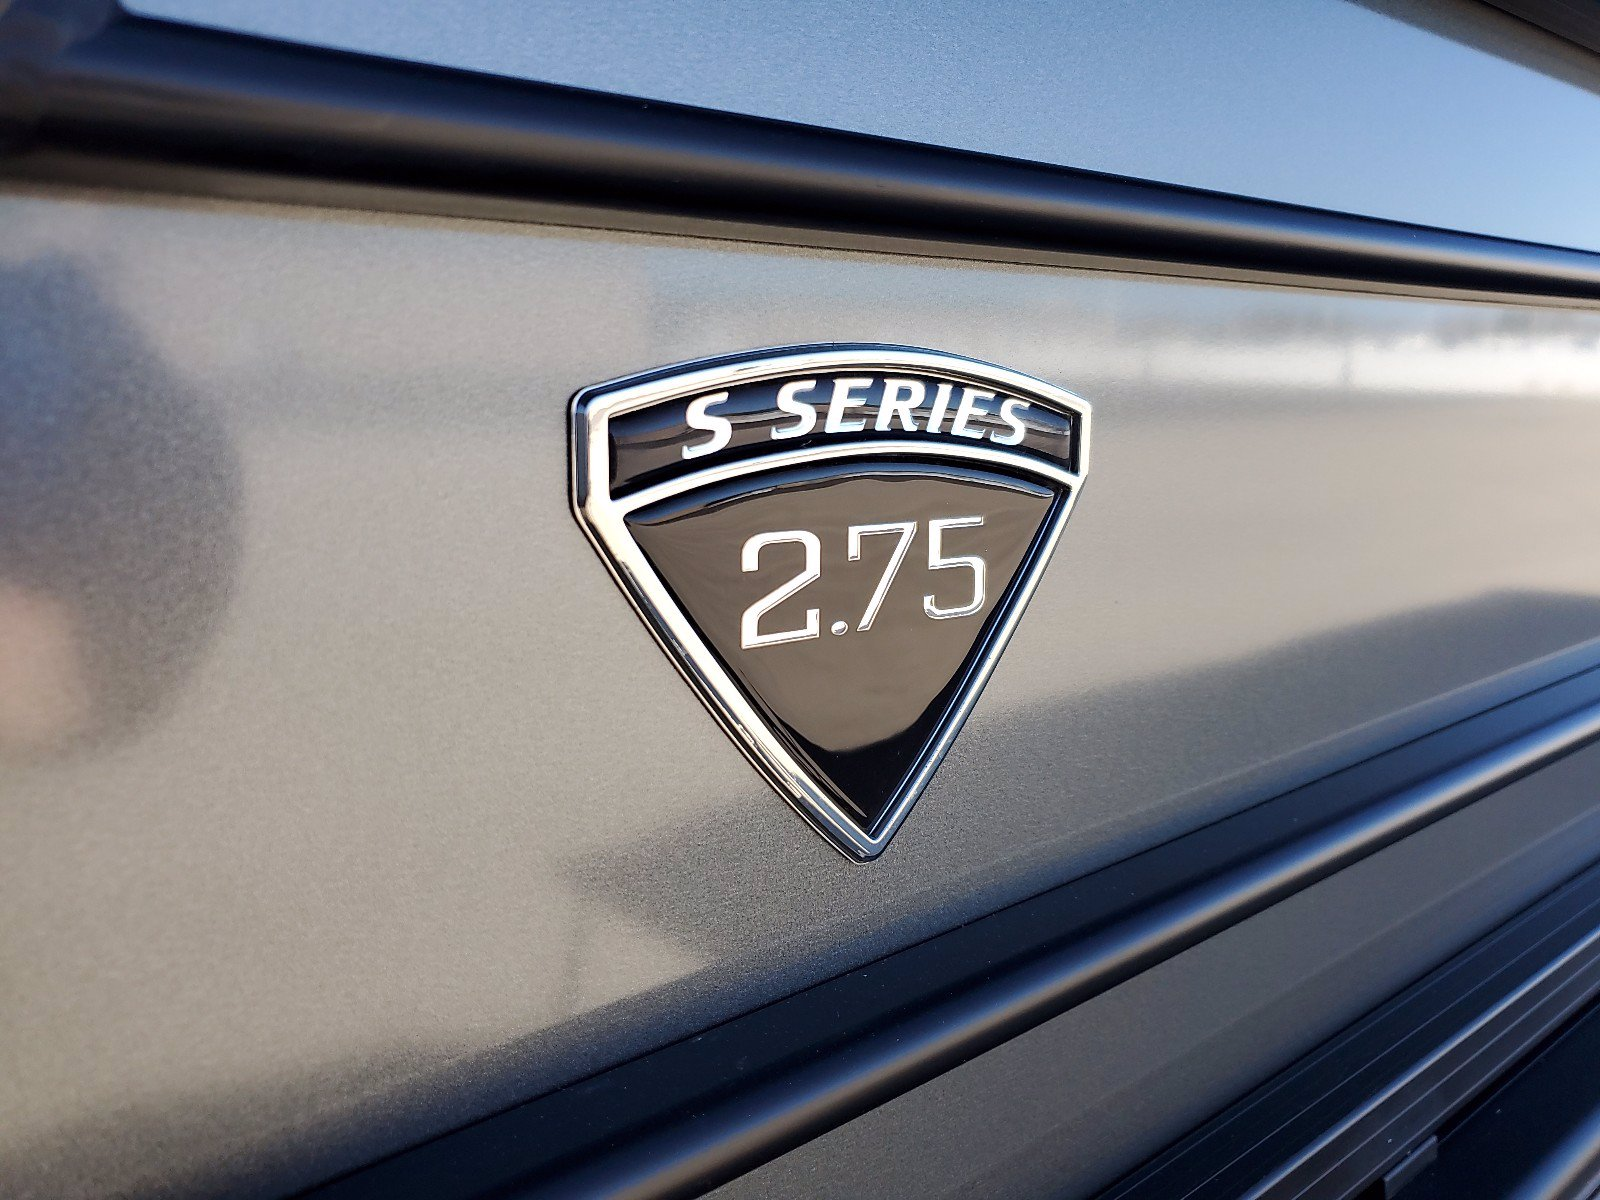 New 2020 TRIFECTA S SERIES 23SB